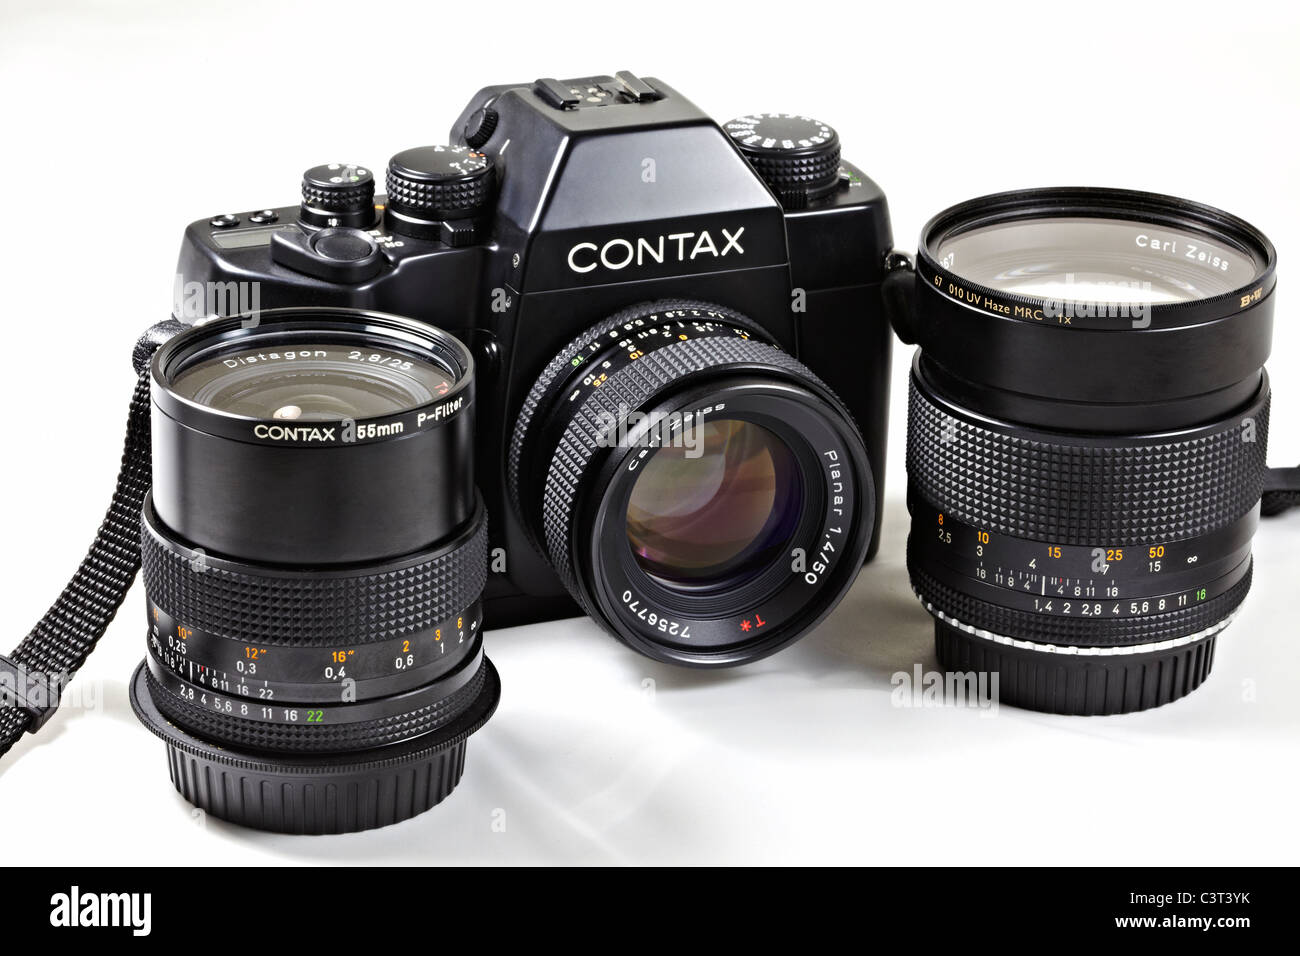 Film camera. Legendary Contax RX 35mm SLR designed by Porsche and complete with Carl Zeiss lenses. Stock Photo